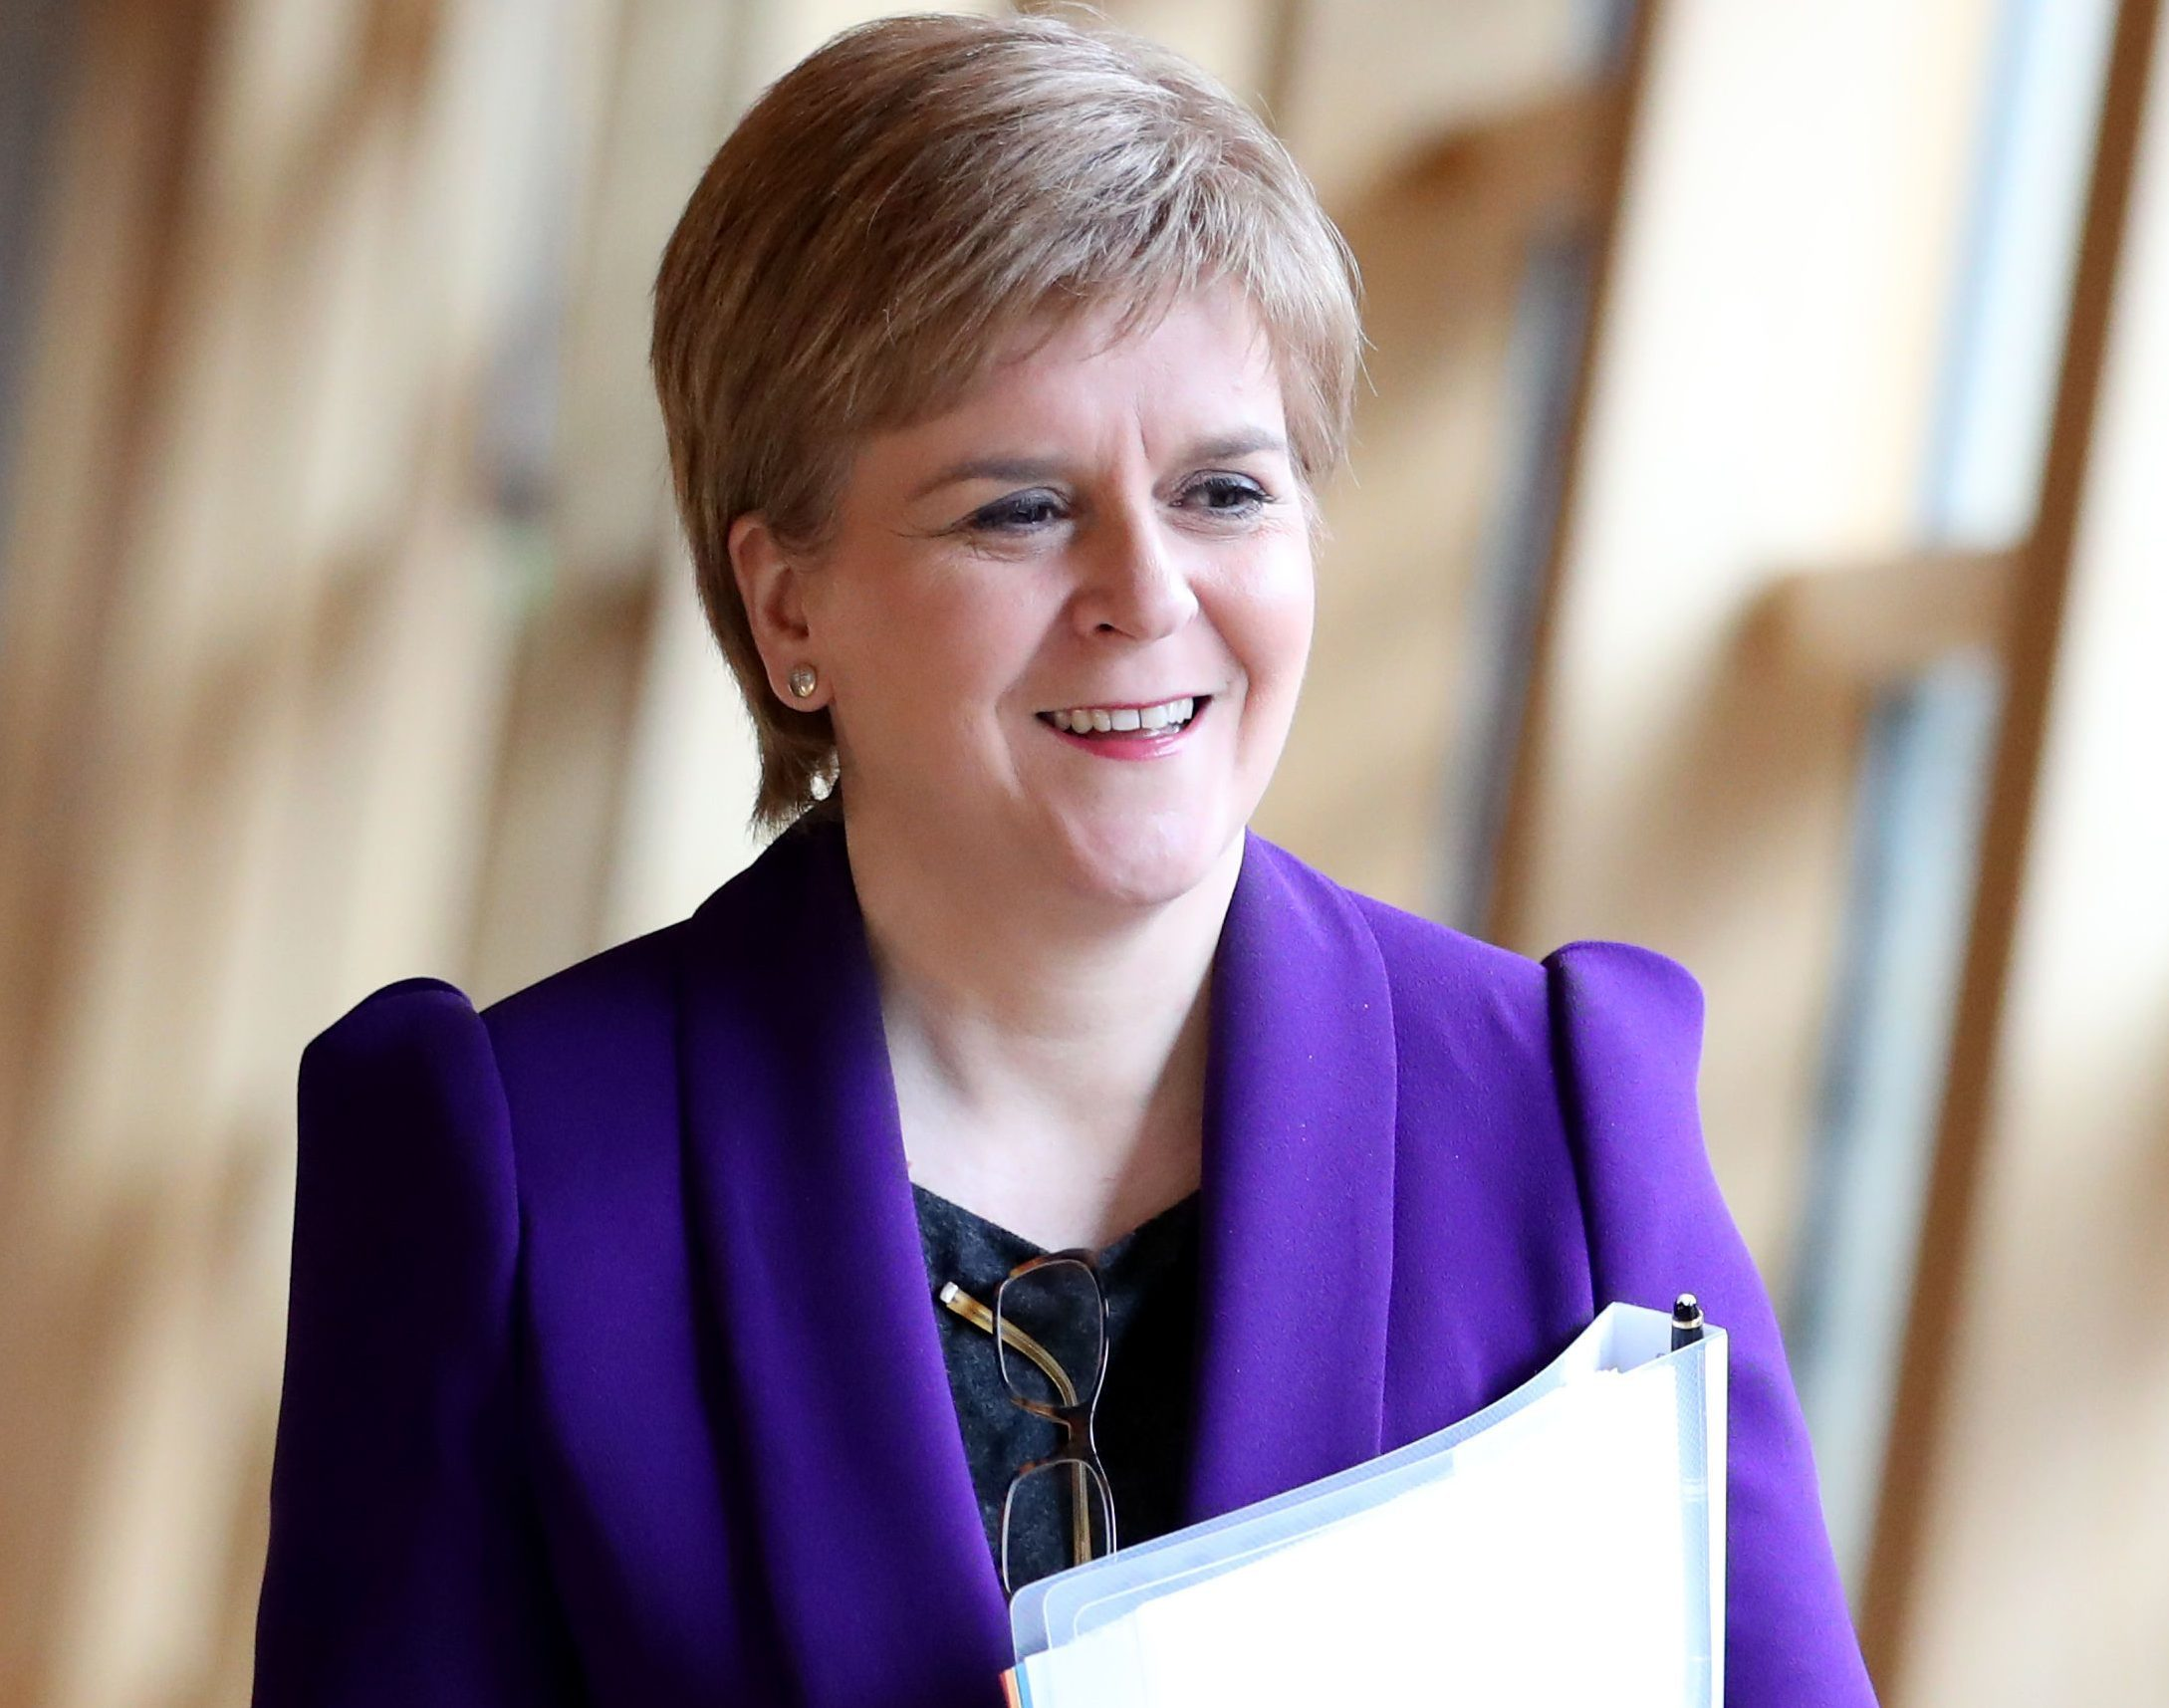 """First Minister Nicola Sturgeon, who has said she is """"fairly certain"""" there will be a second referendum on Scottish independence - but she does not think Britons will get another chance to vote on remaining in the European Union. (Jane Barlow/PA Wire)"""